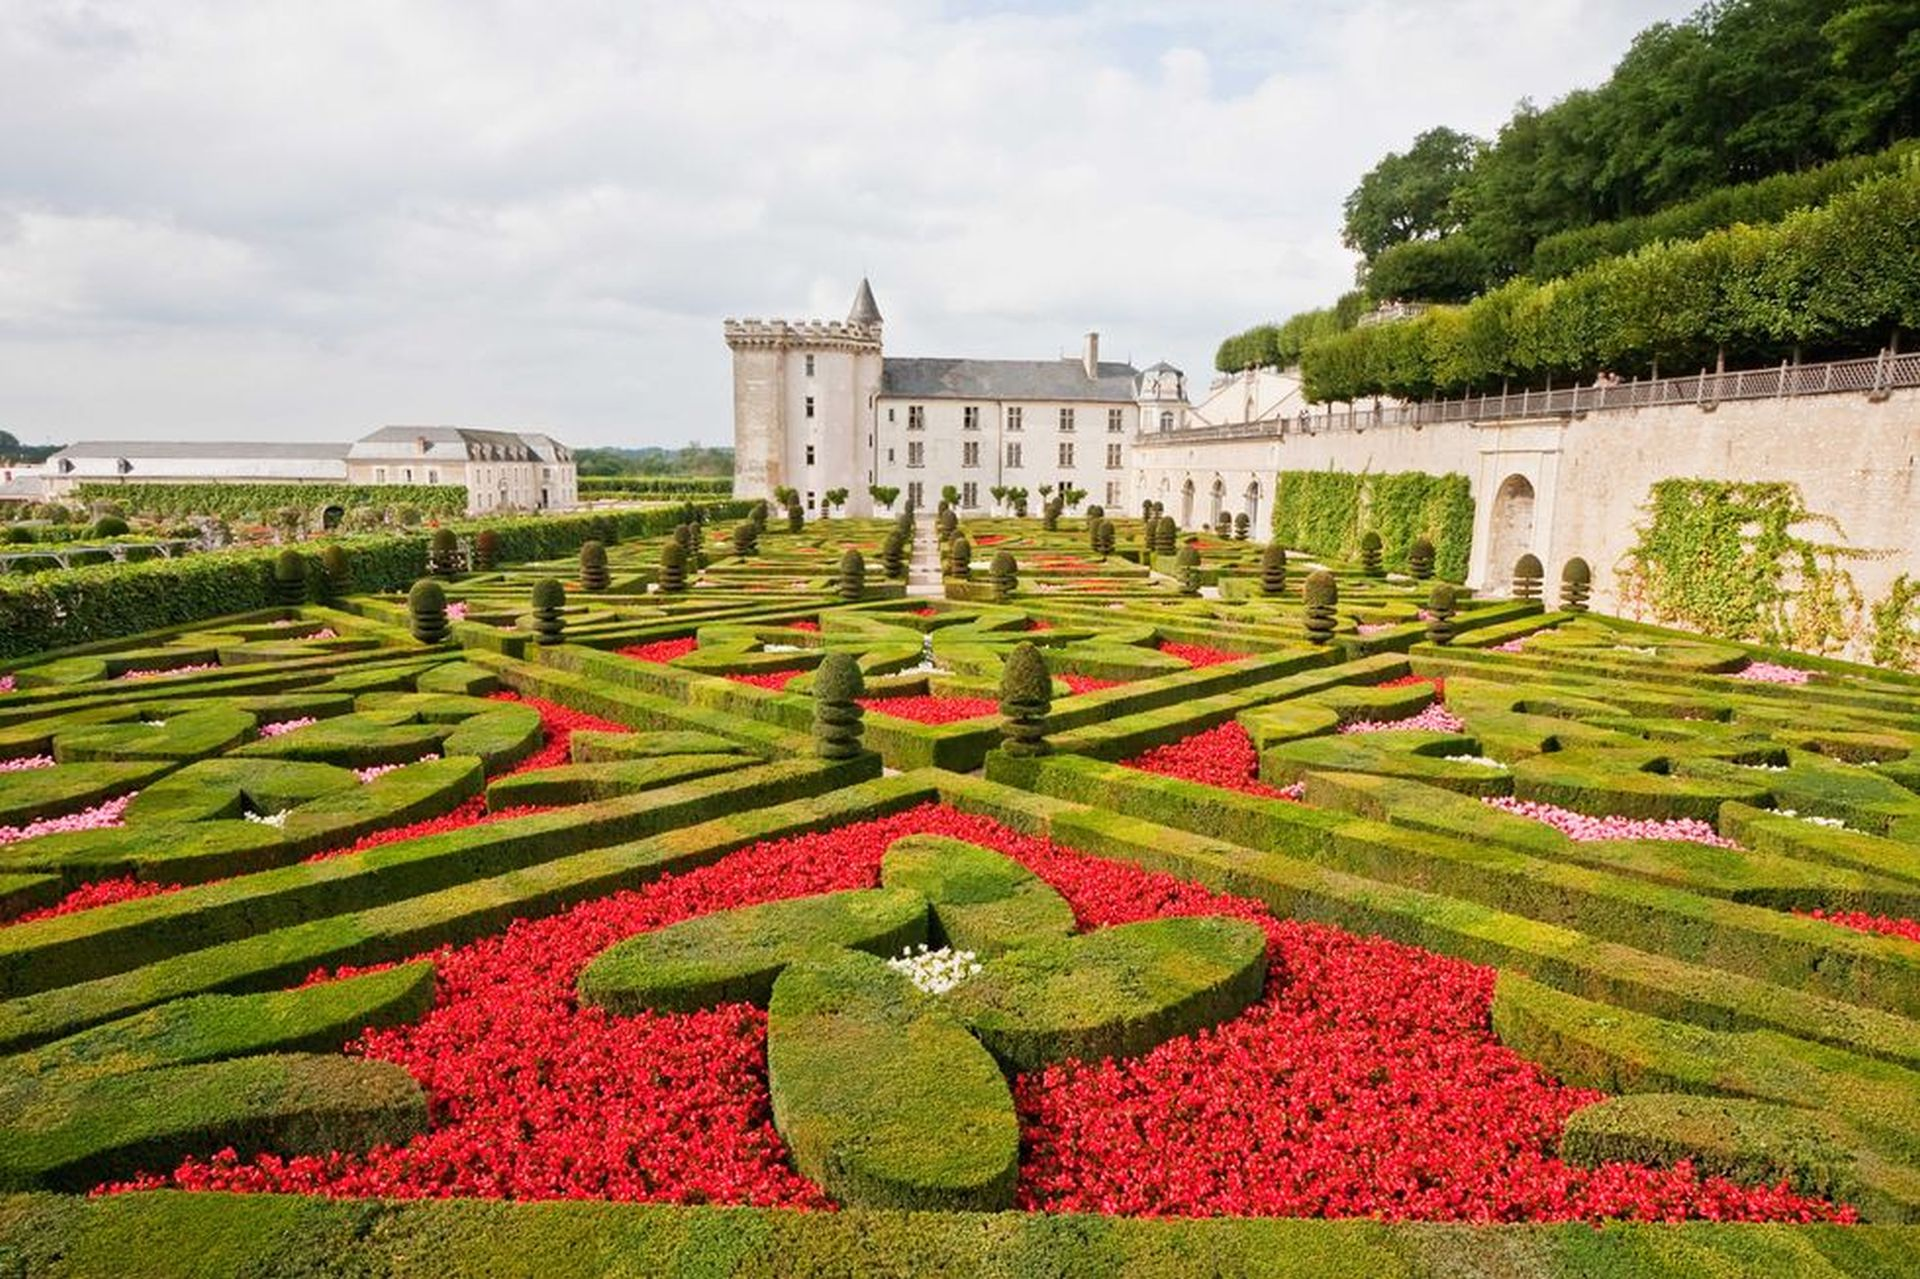 beautiful gardens with figures and many roses off the paths.